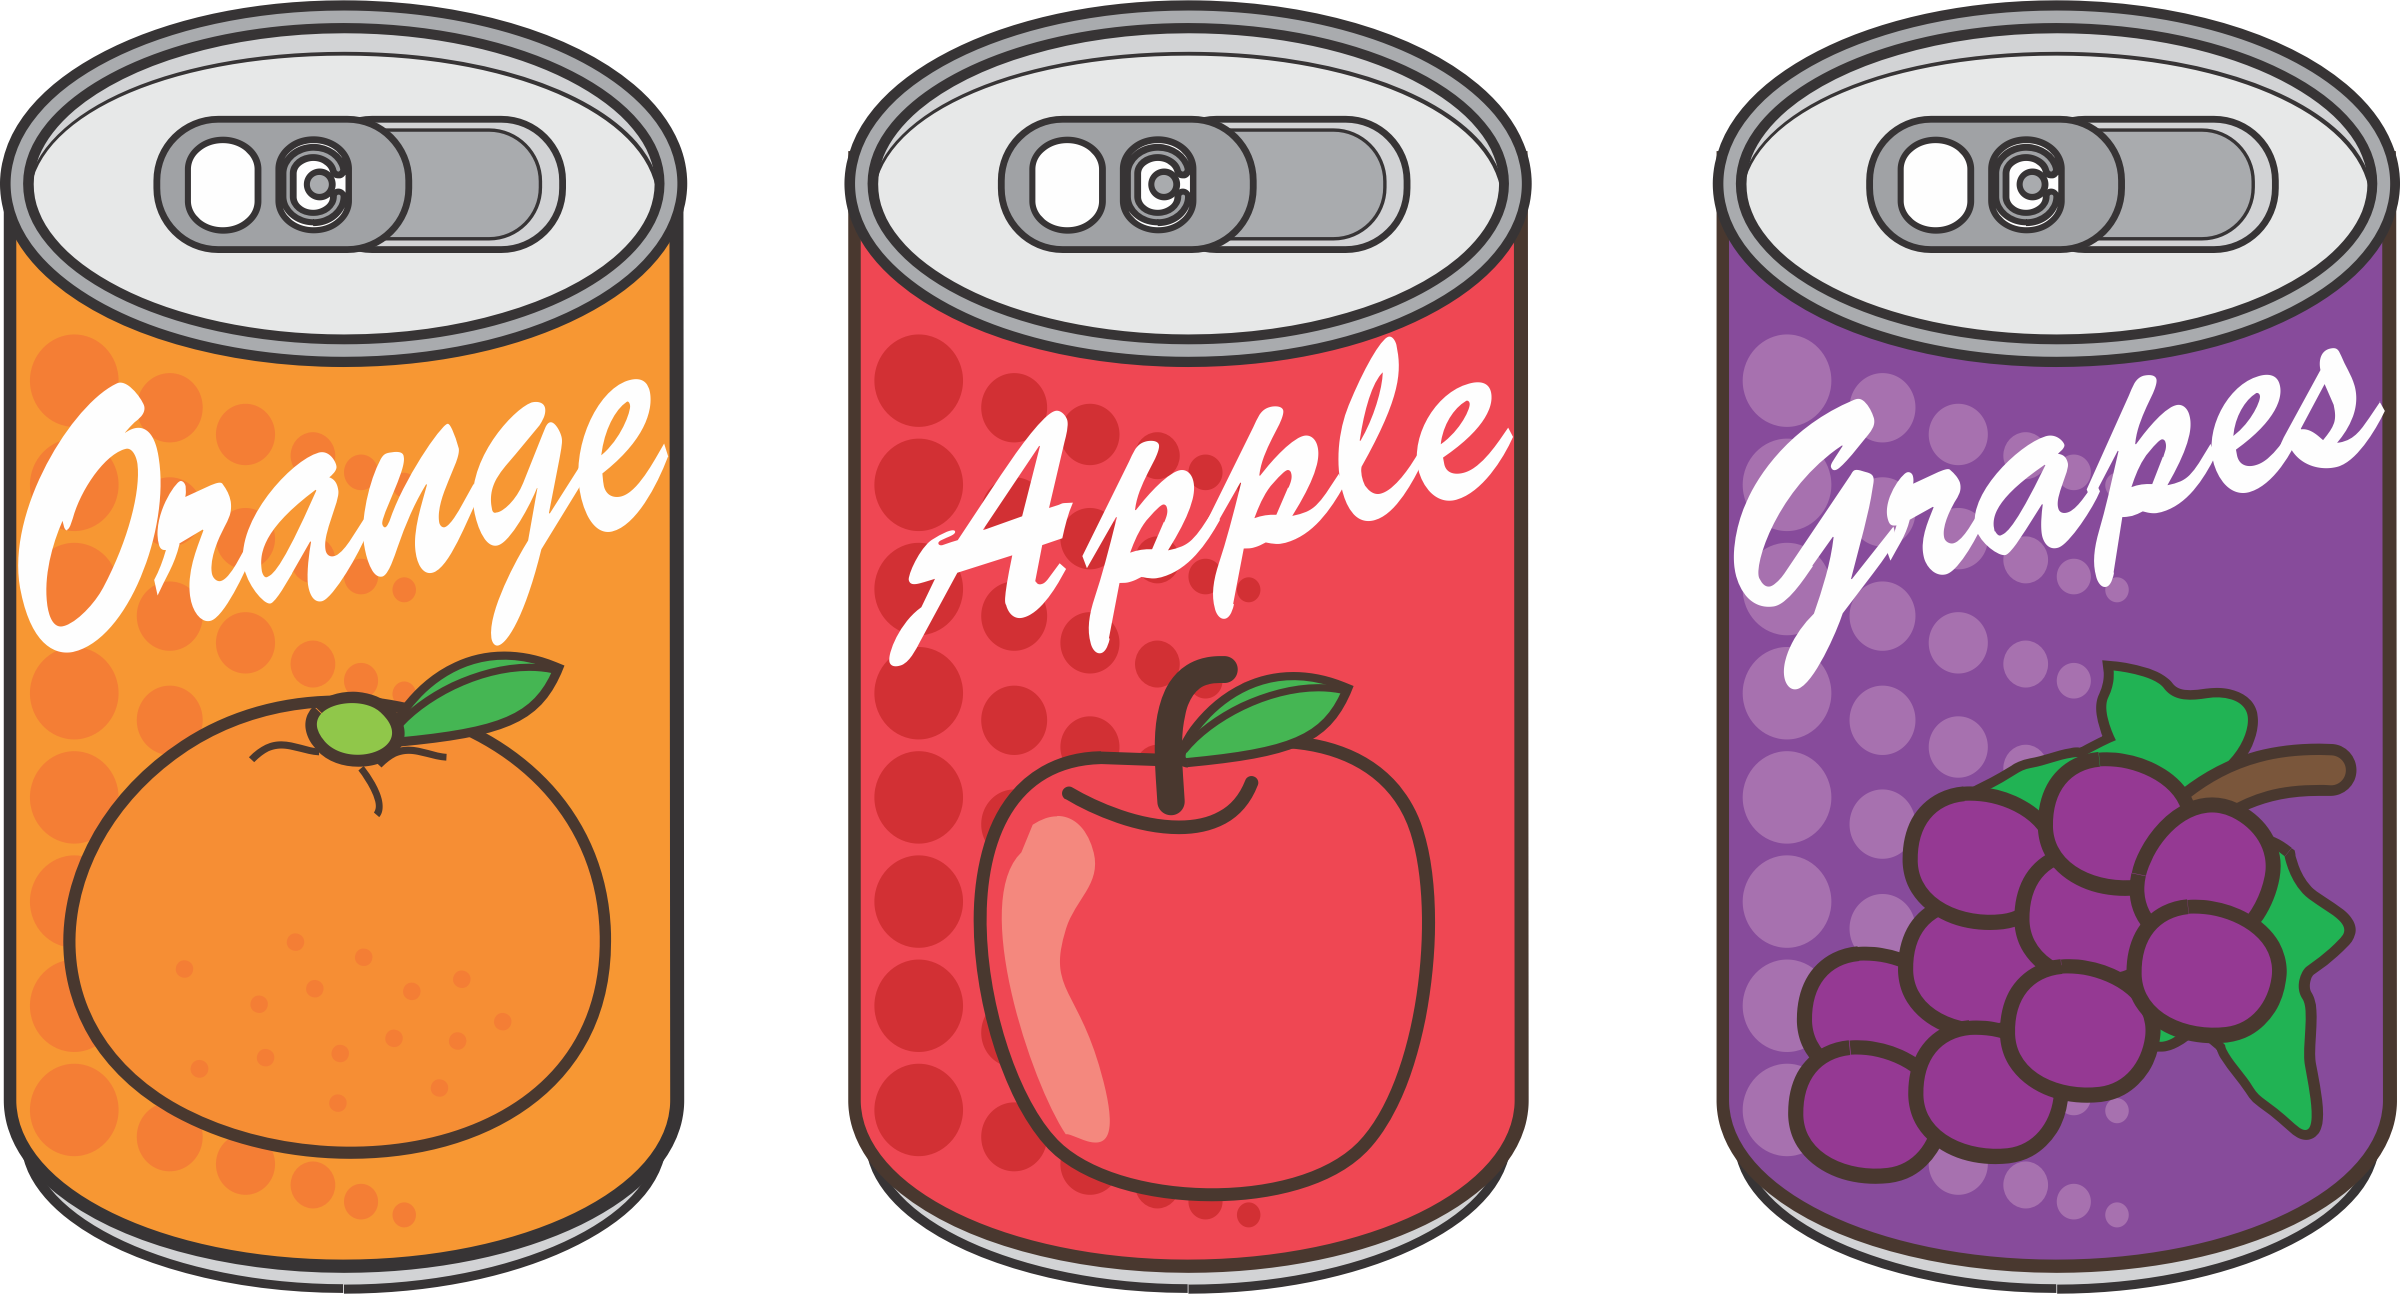 Drinks clipart takeaway. Canned big image png